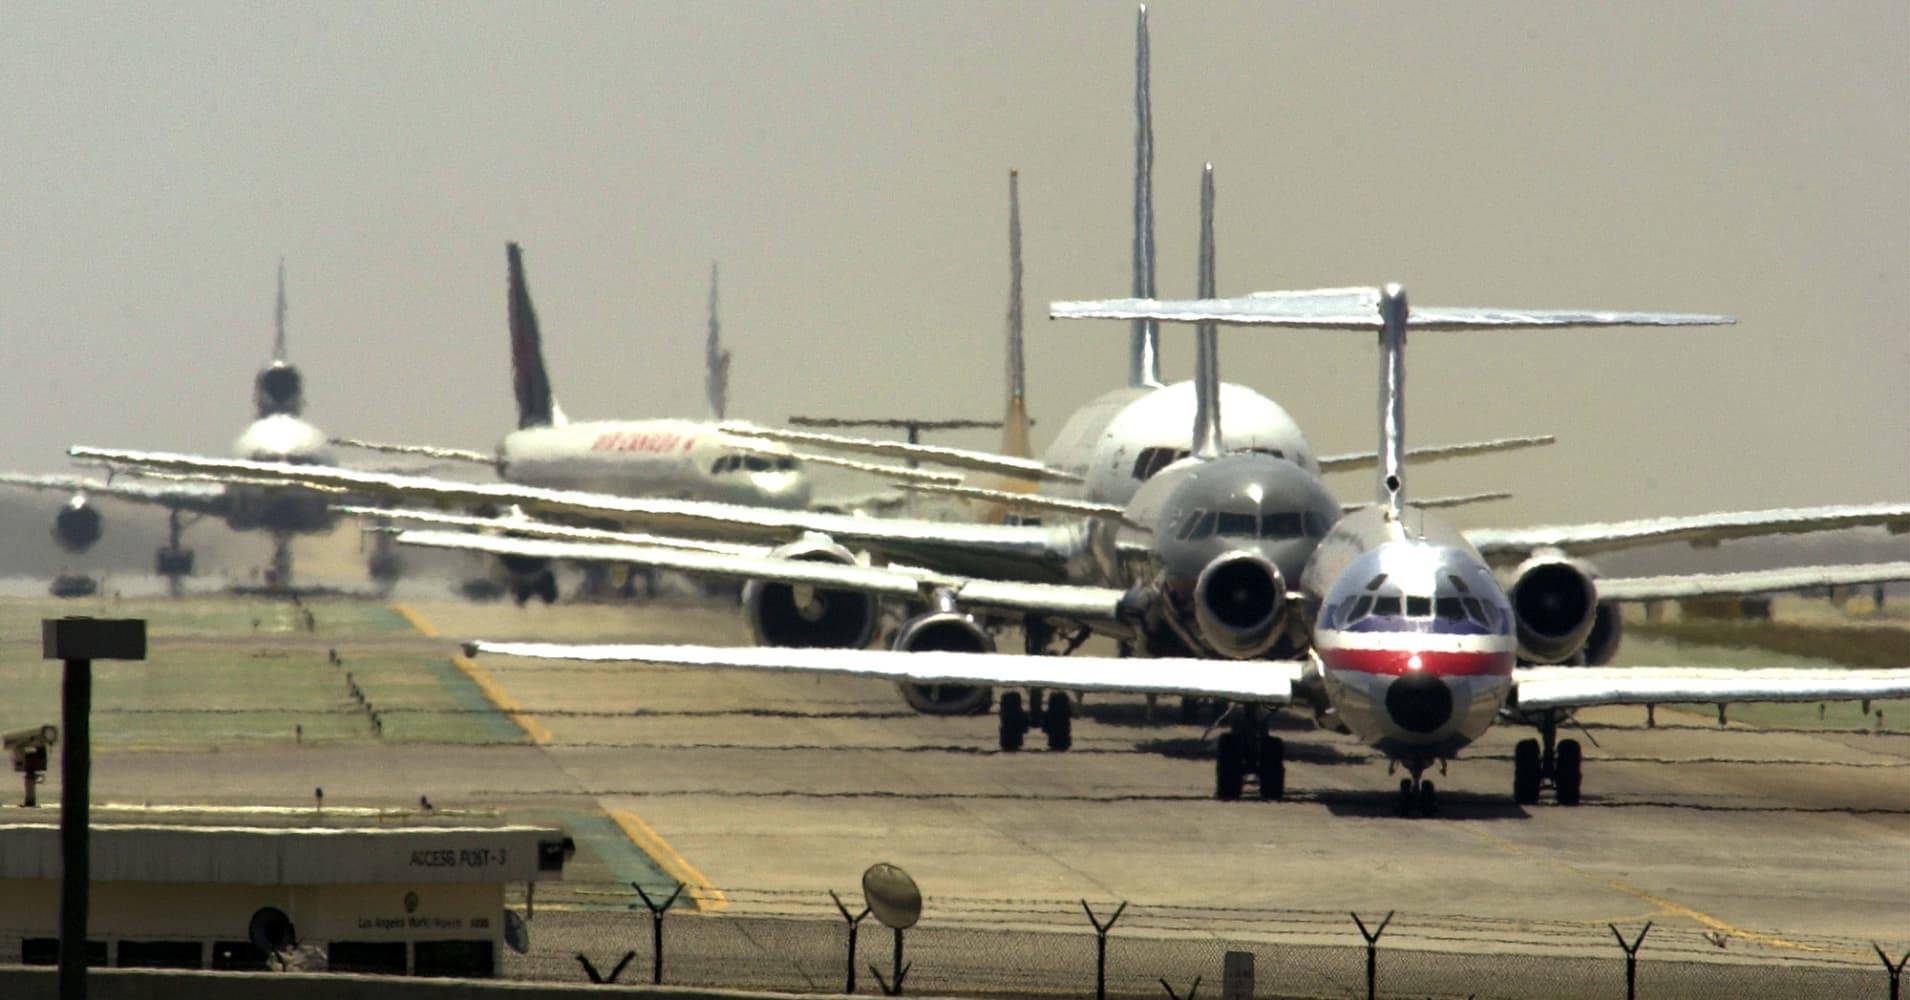 Airlines get higher fuel bills just as busy summer flying season approaches